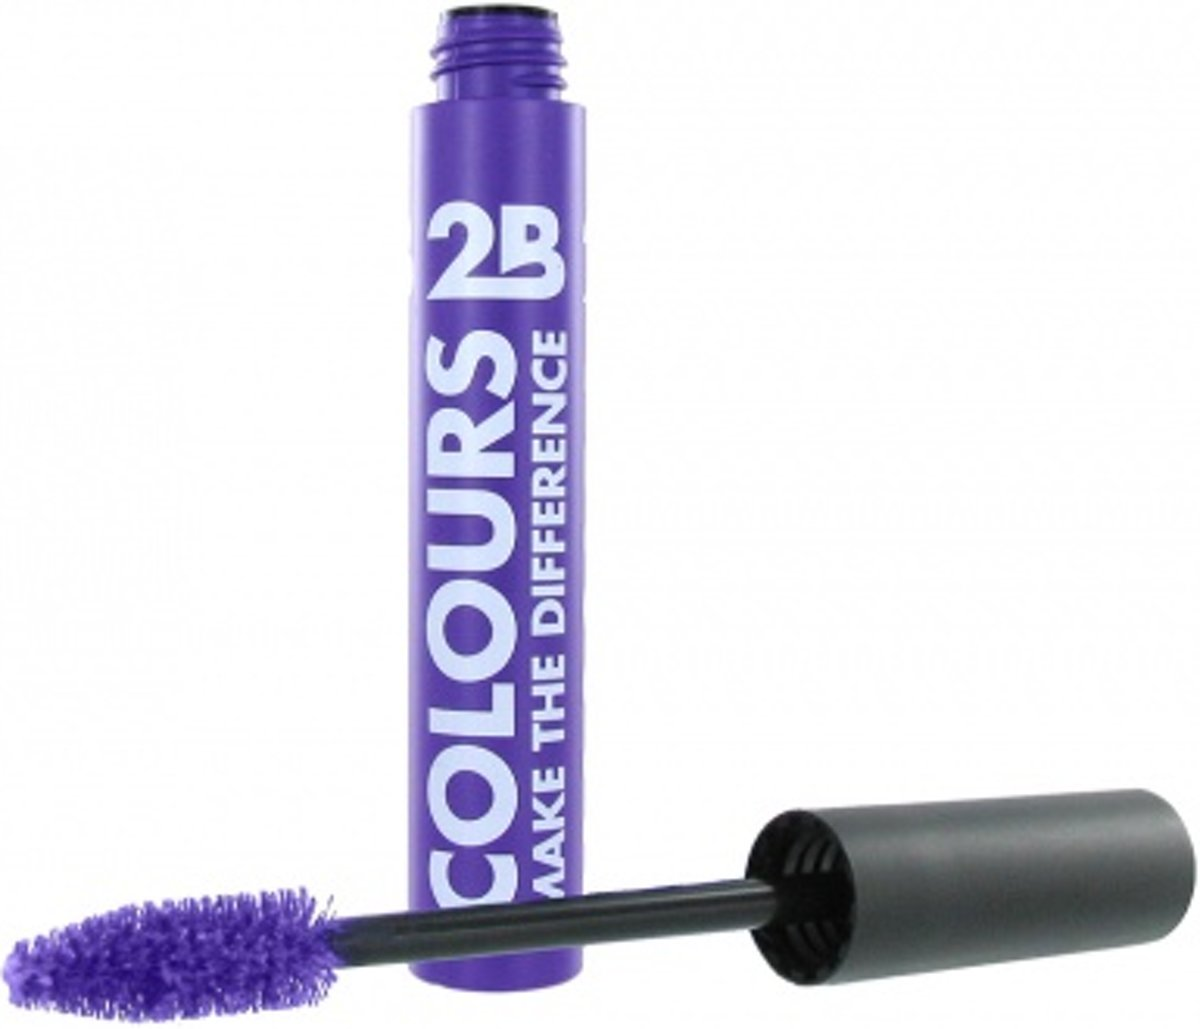 2B-Mascara colours make the difference mega violet